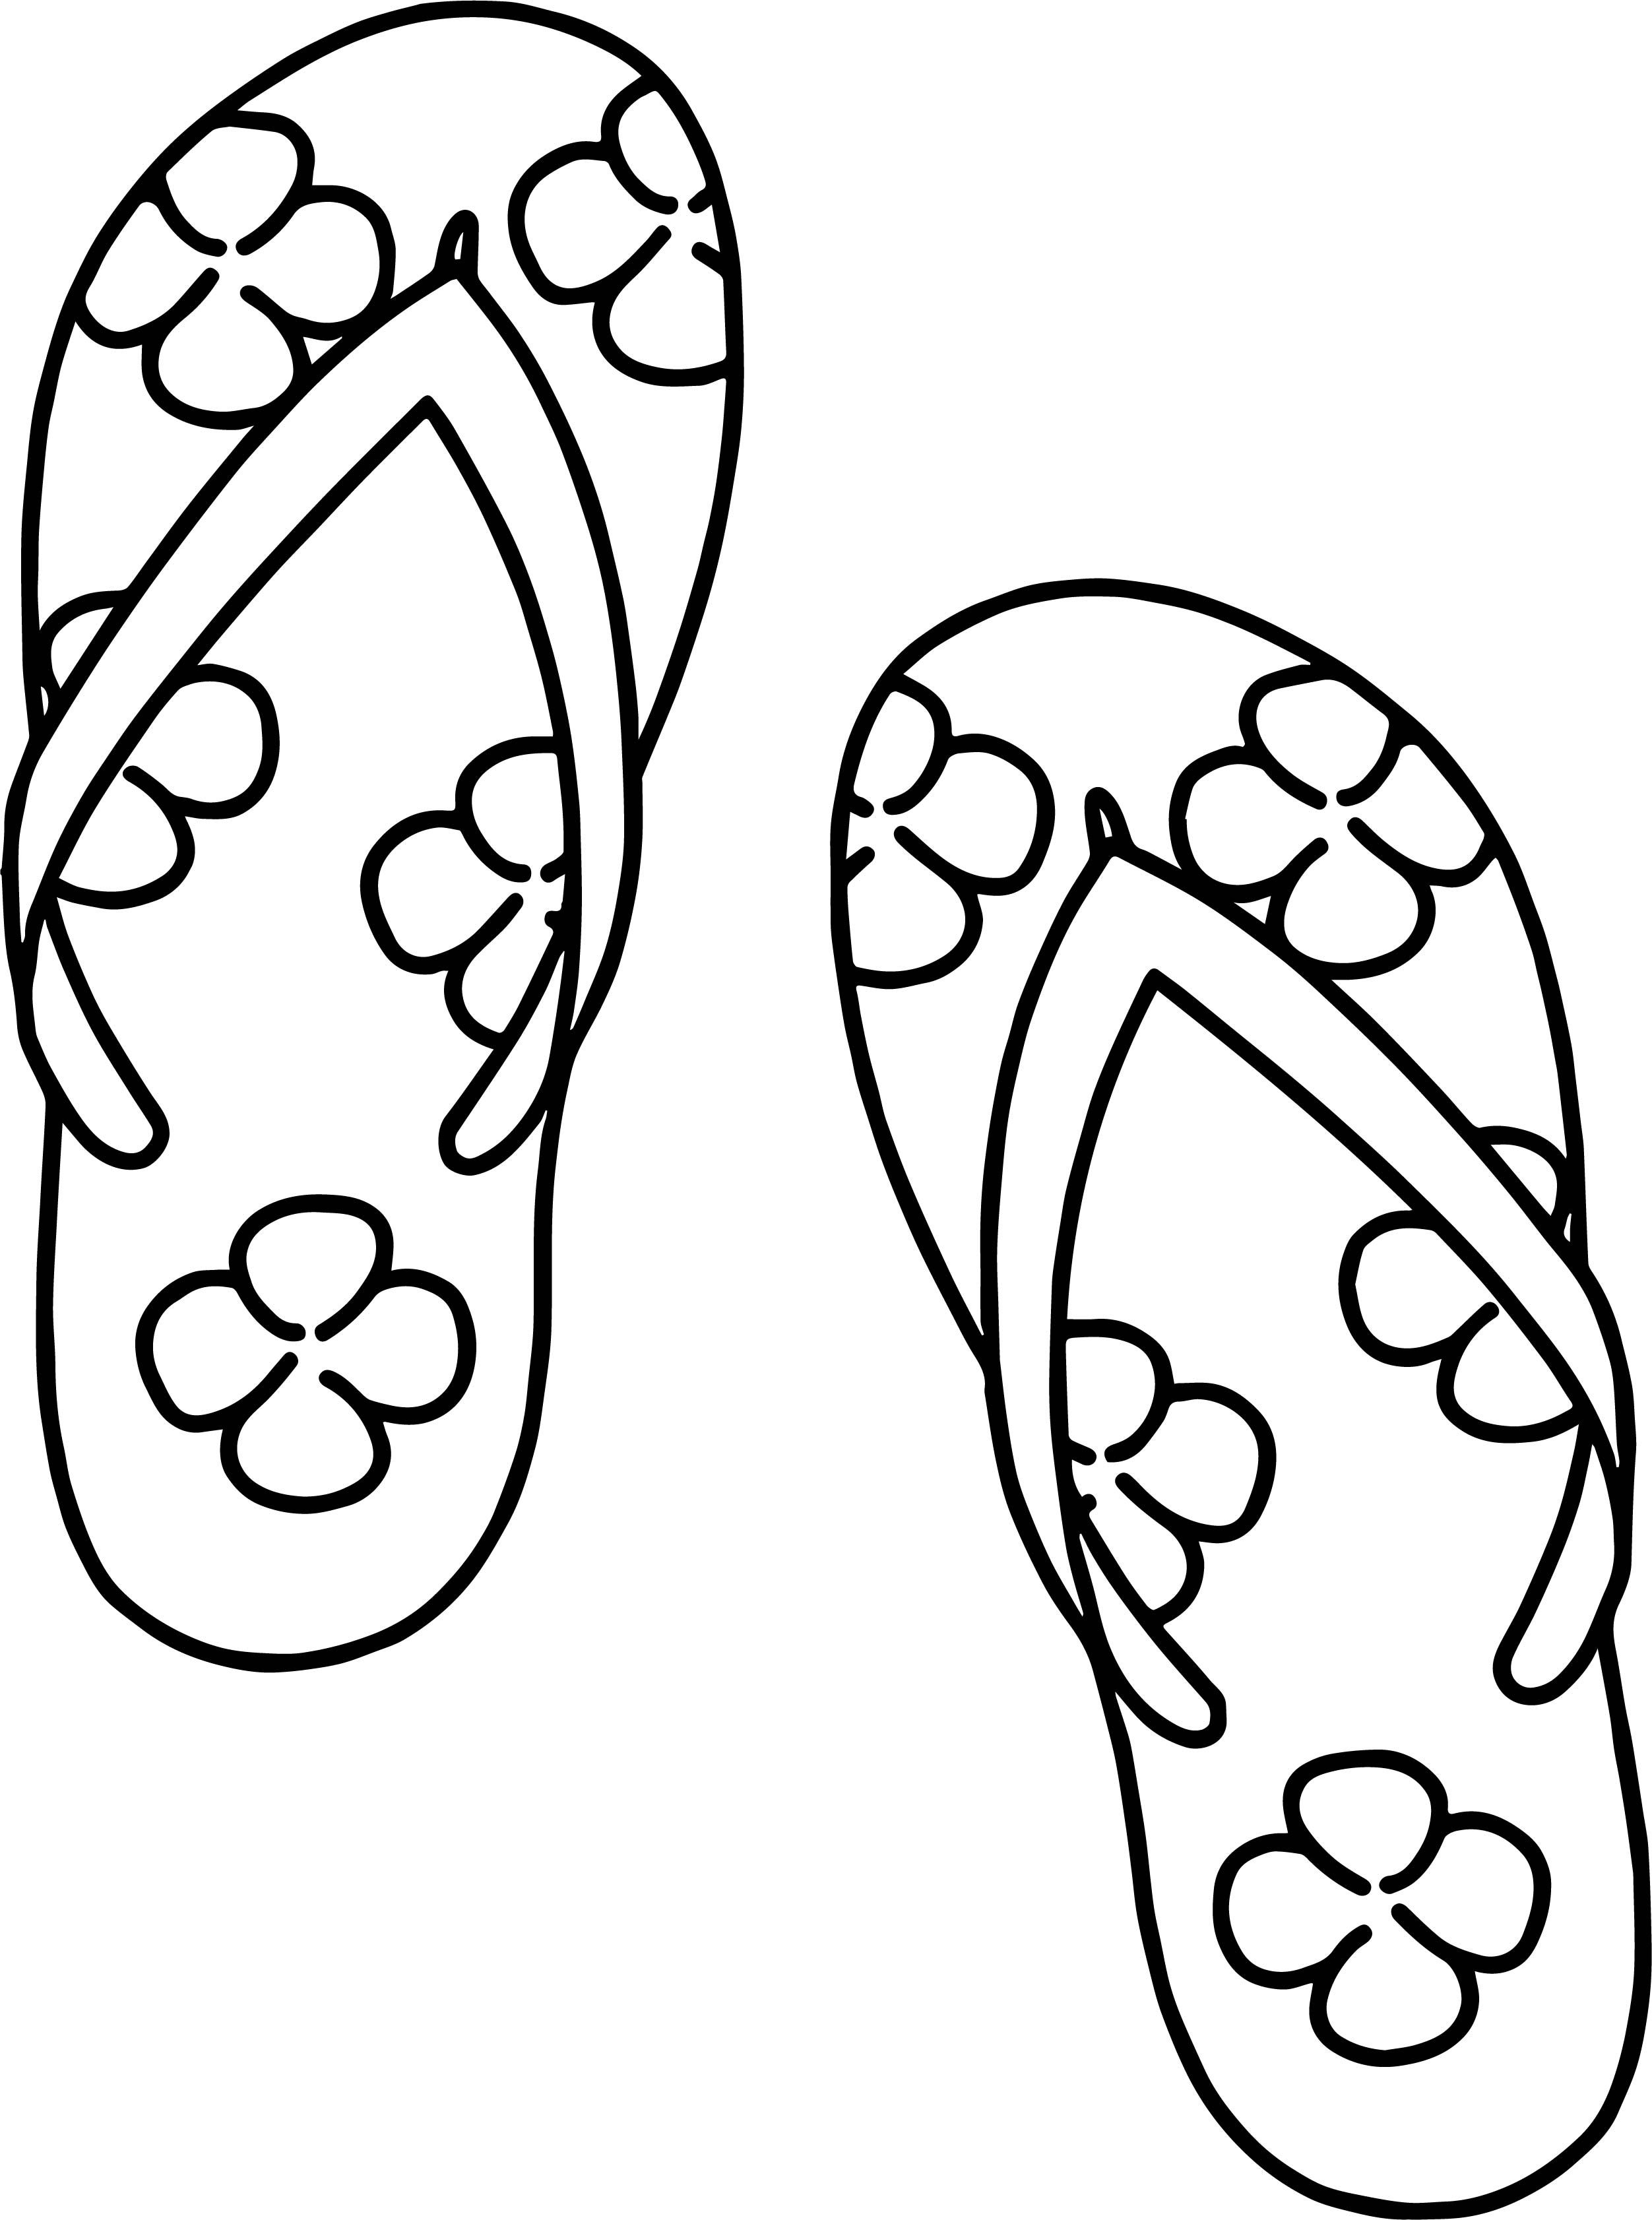 Nice Slipper Summer Clover Coloring Page With Images